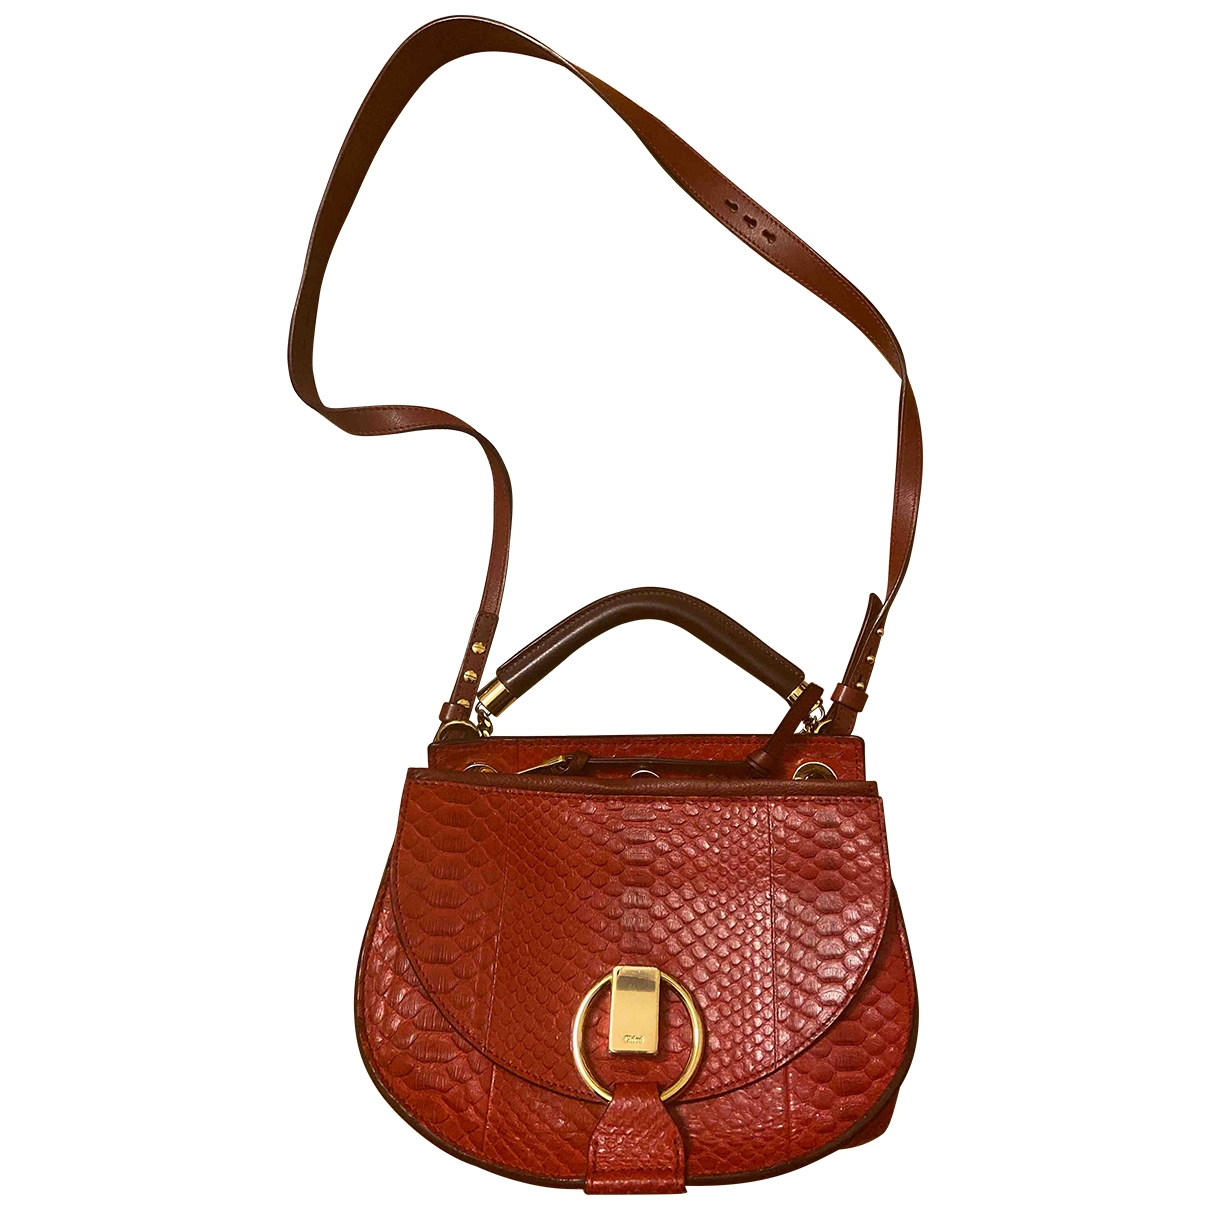 Chloé \N Red Python handbag for Women \N